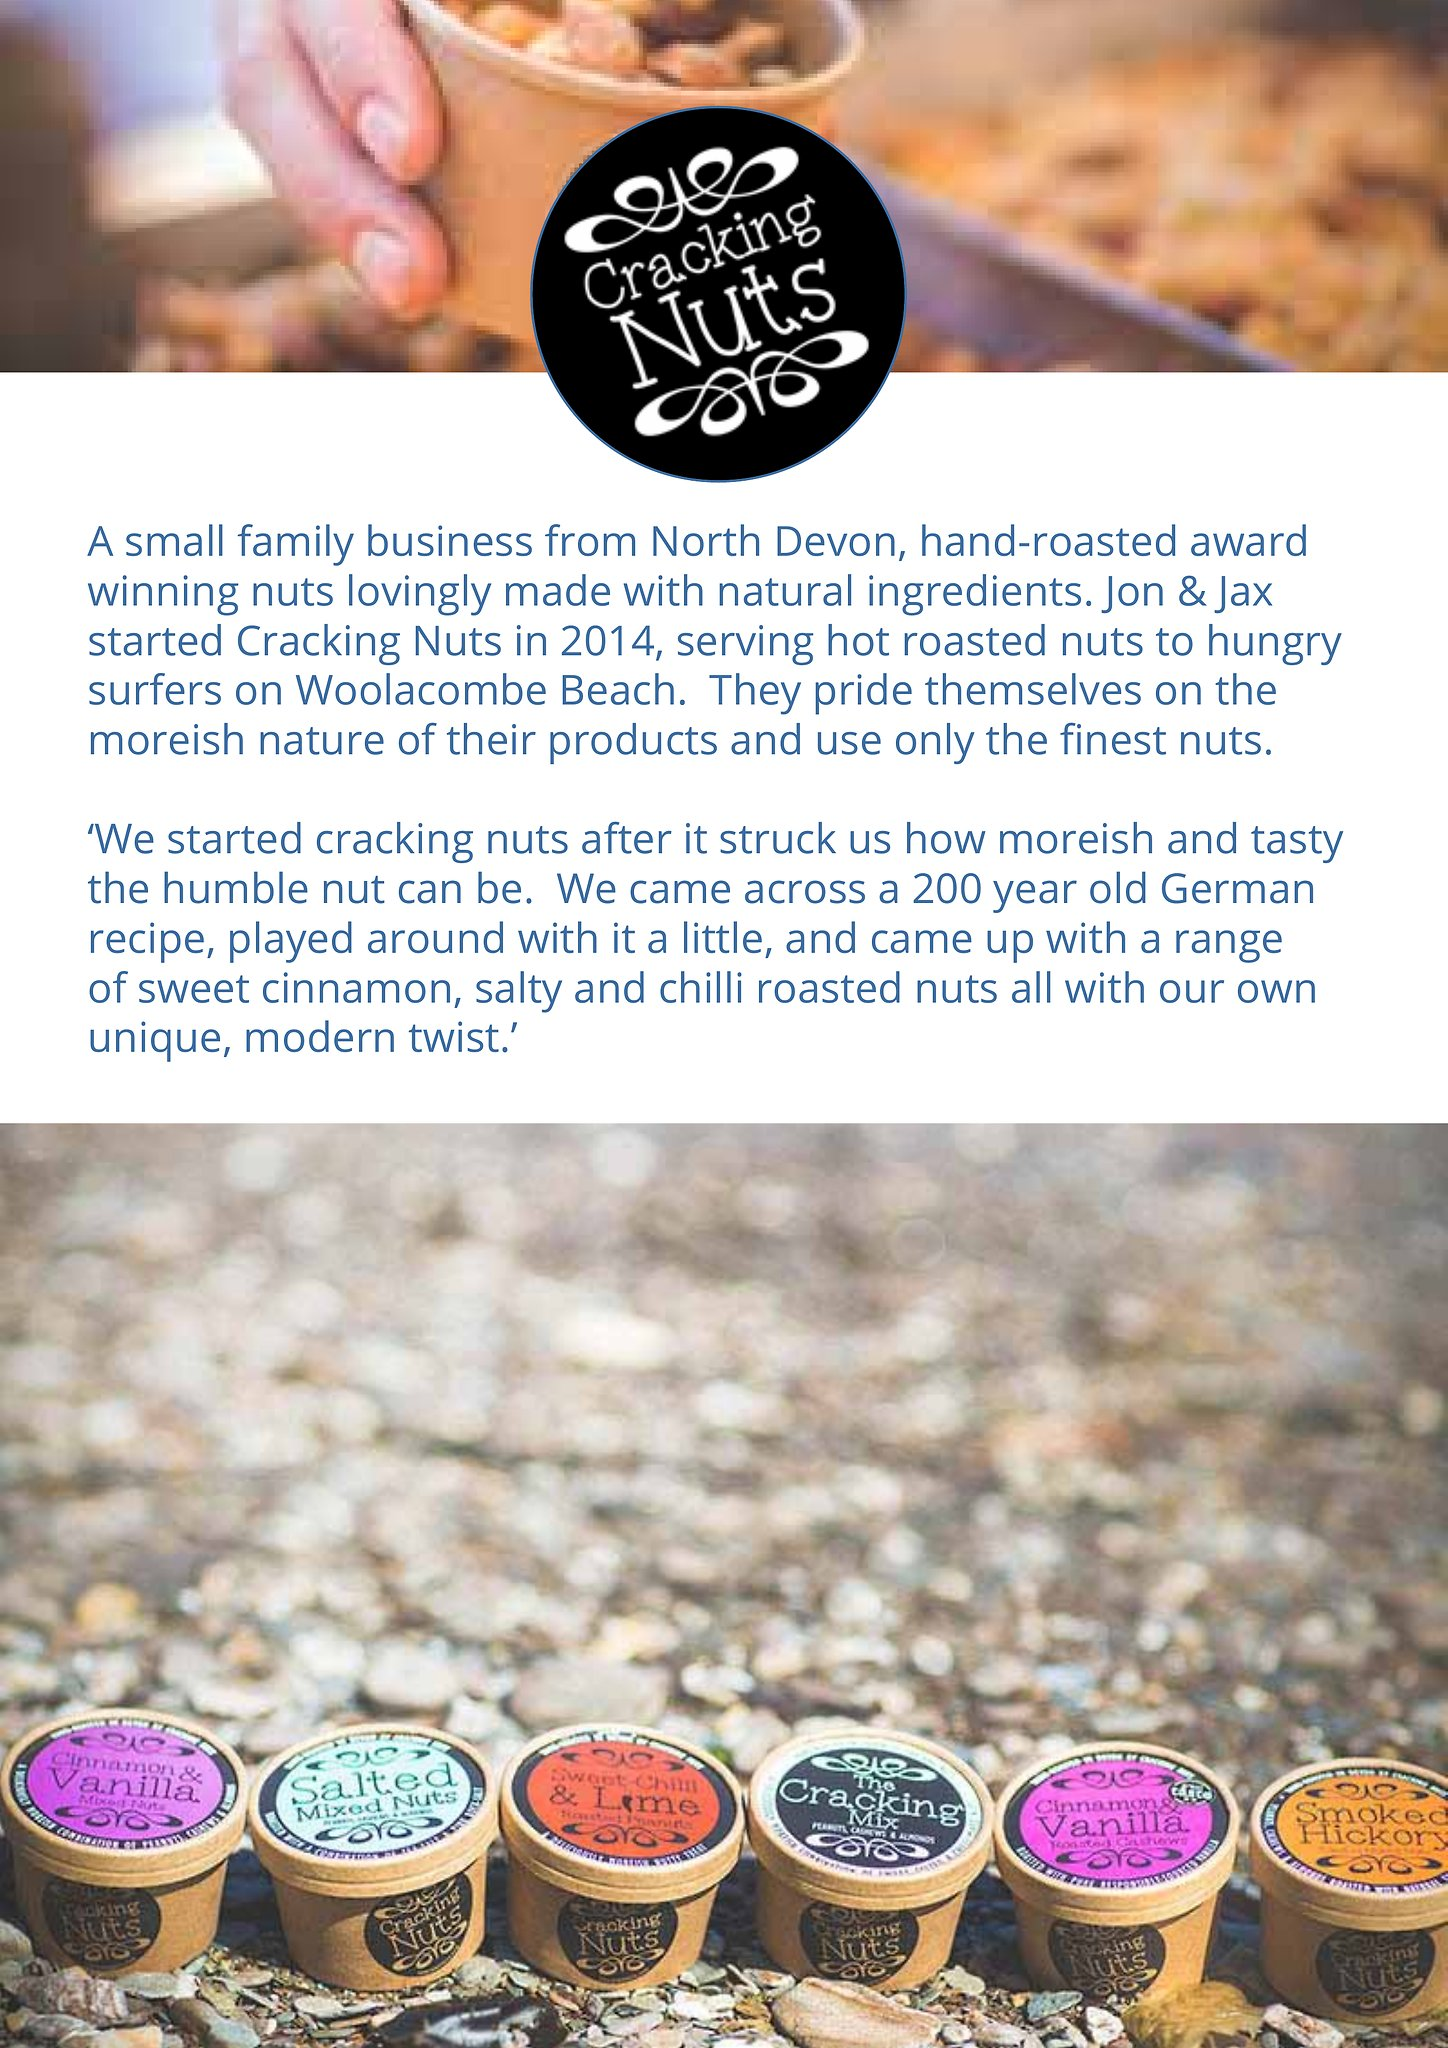 Cracking Nuts - Hand-roasted artisan nuts. Roasted in Devon using only the finest nuts and all-natural ingredients